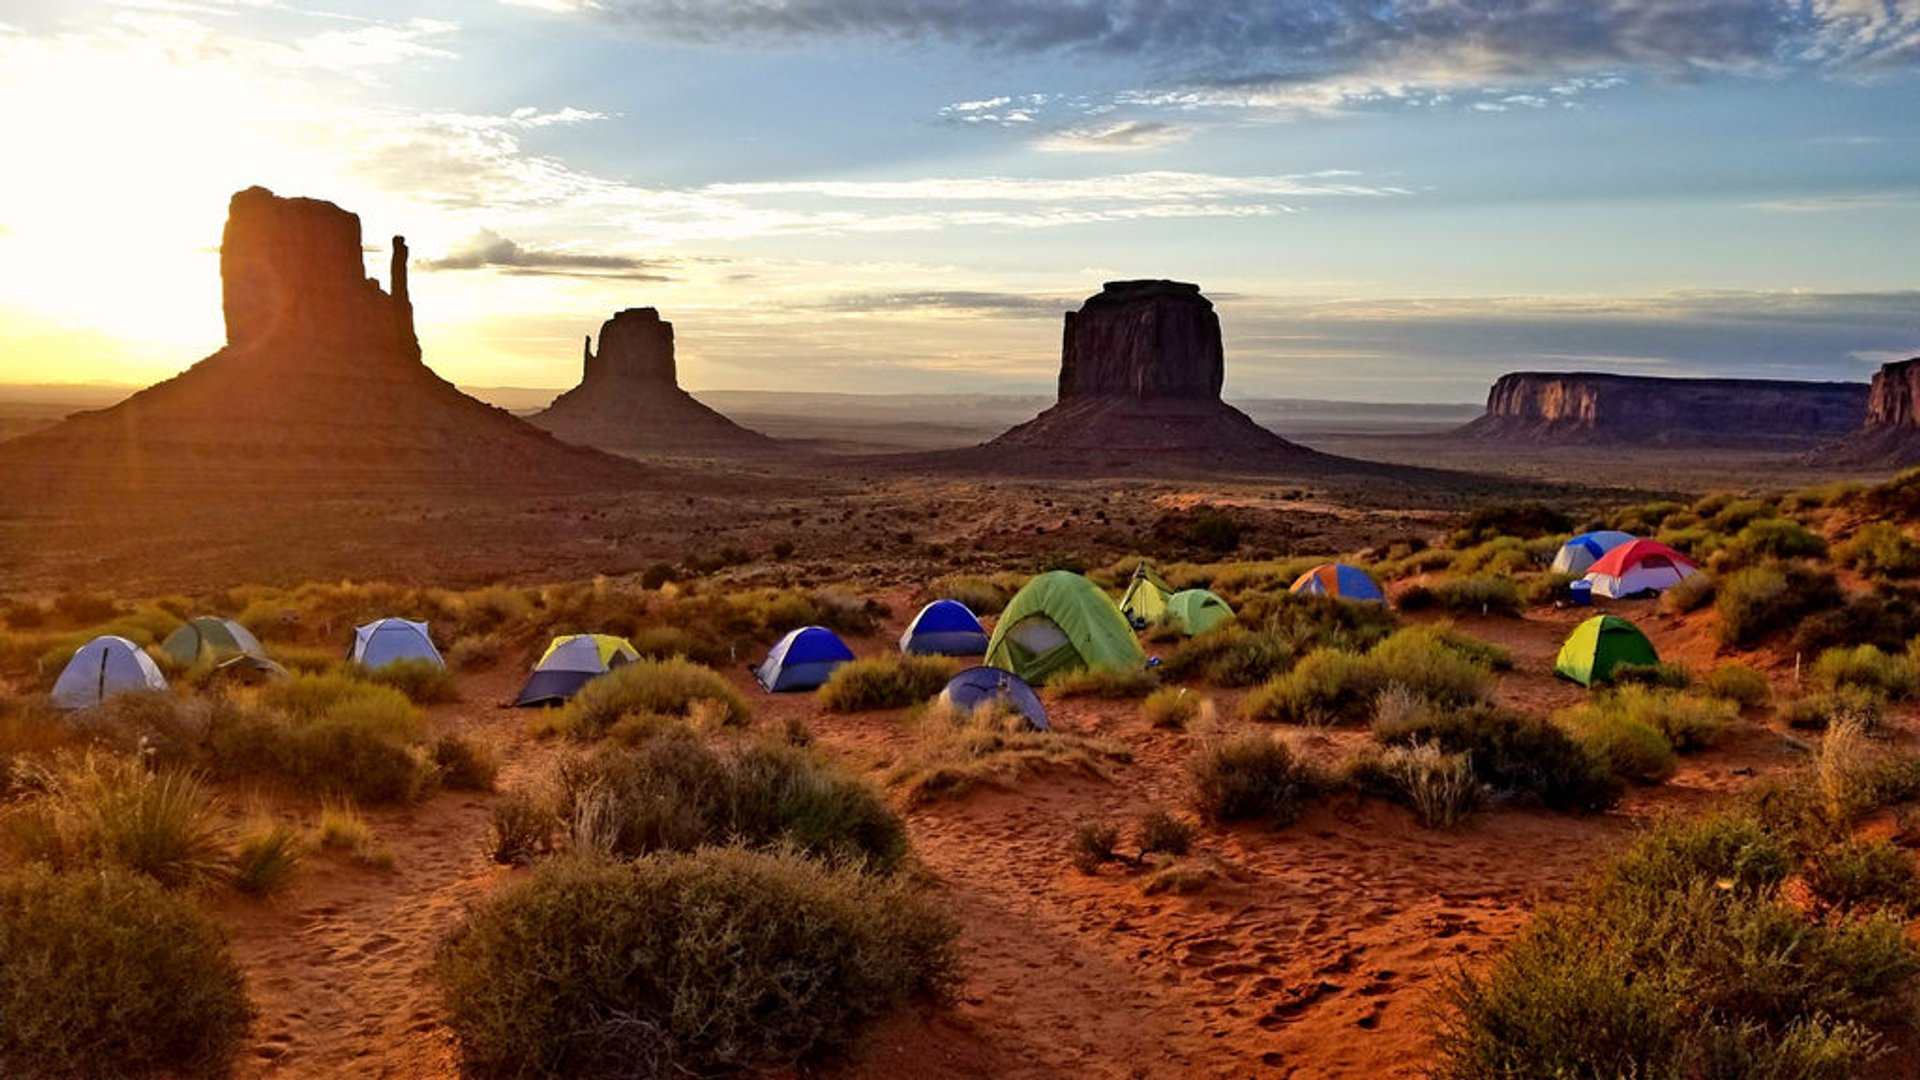 Campground in Monument Valley